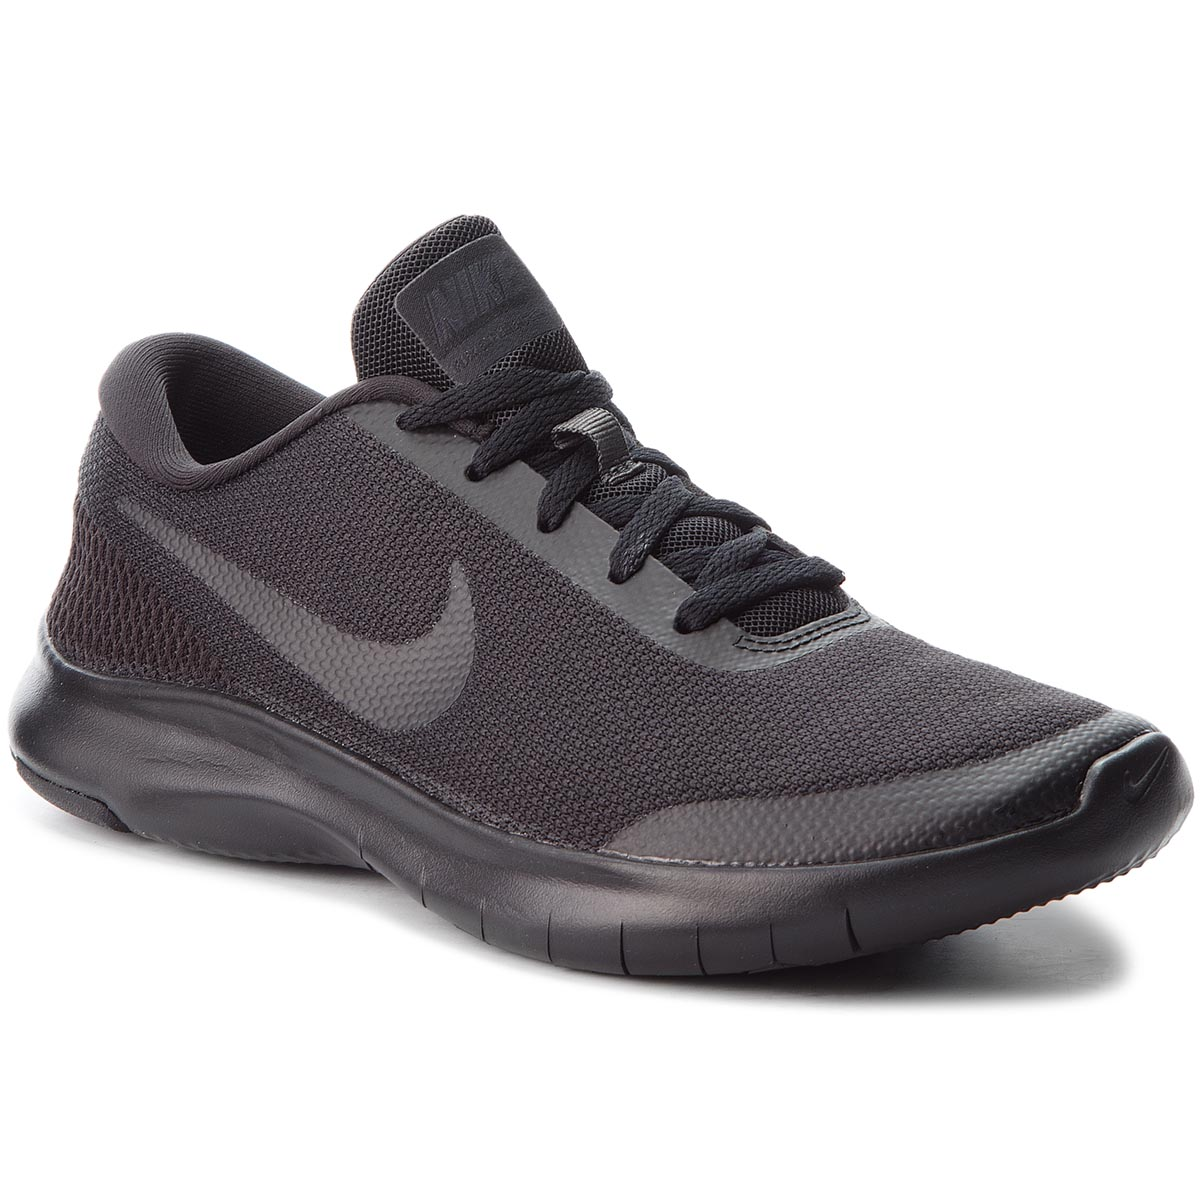 Buty NIKE - Flex Experience Rn 7 908996 002 Black/Black/Anthracite